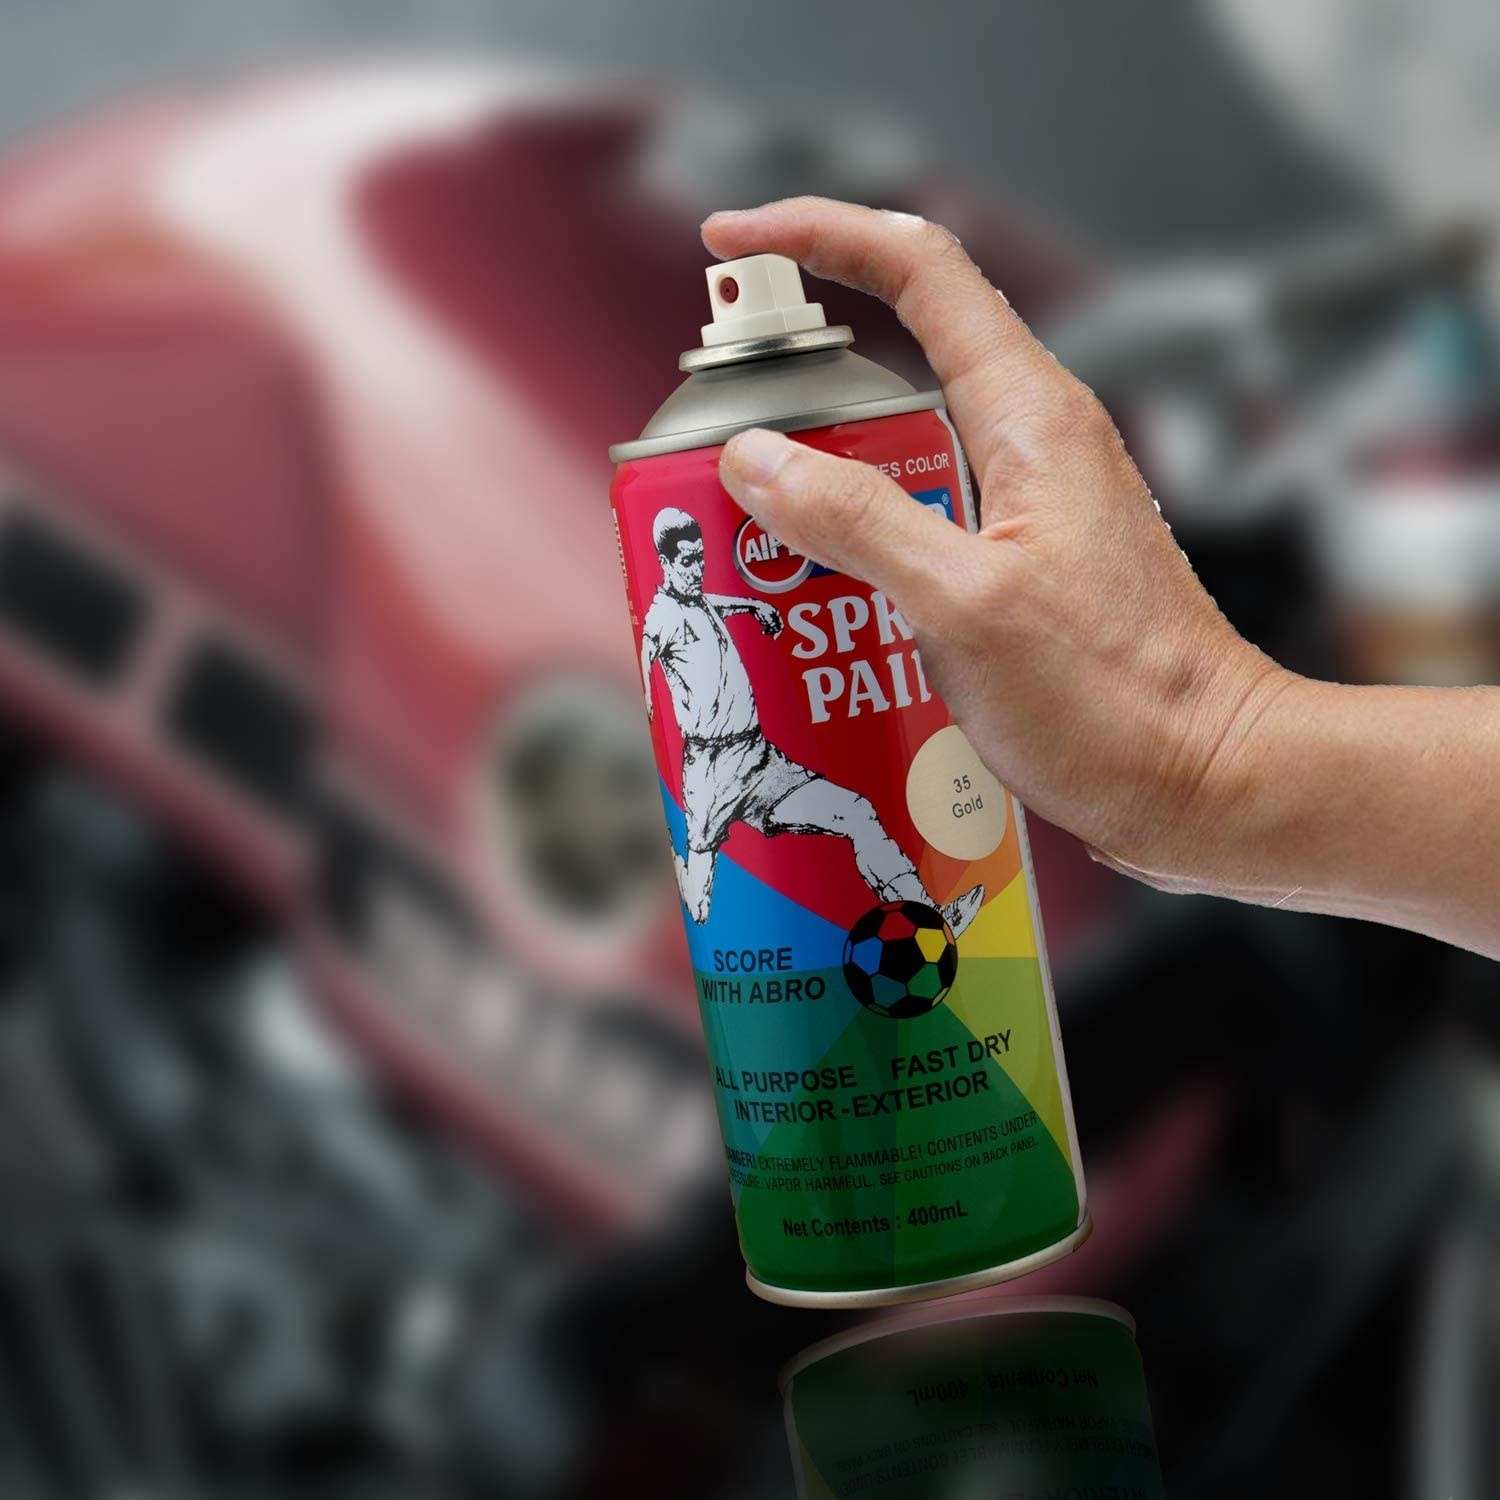 A hand holding the can of paint.